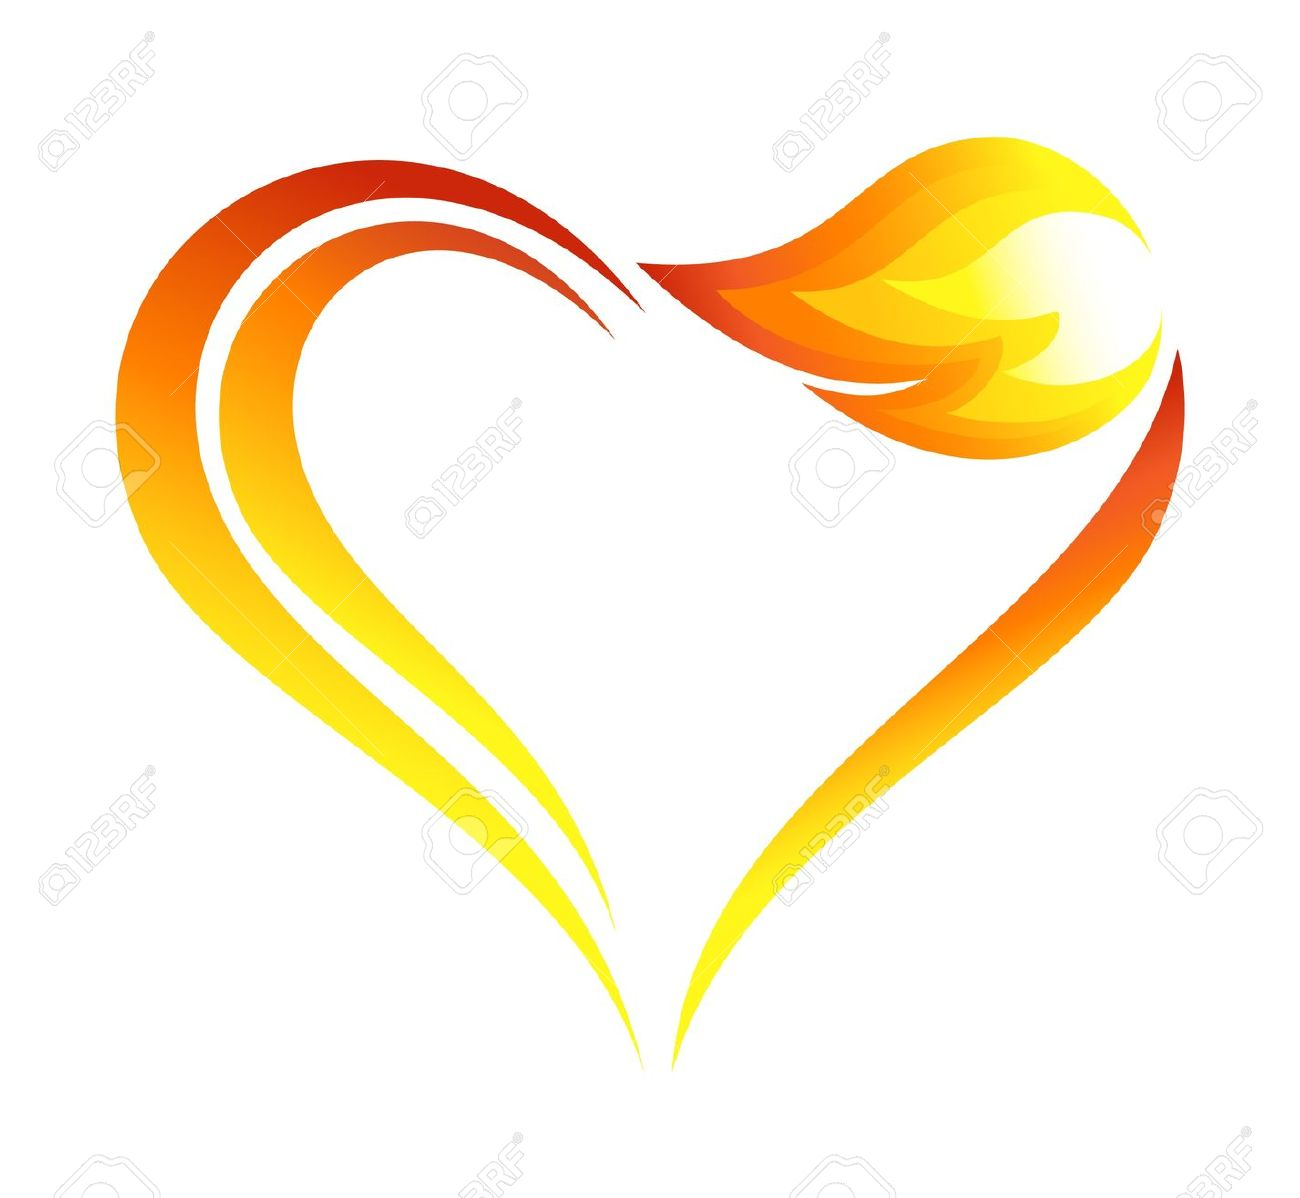 1300x1198 Flames Clipart, Suggestions For Flames Clipart, Download Flames